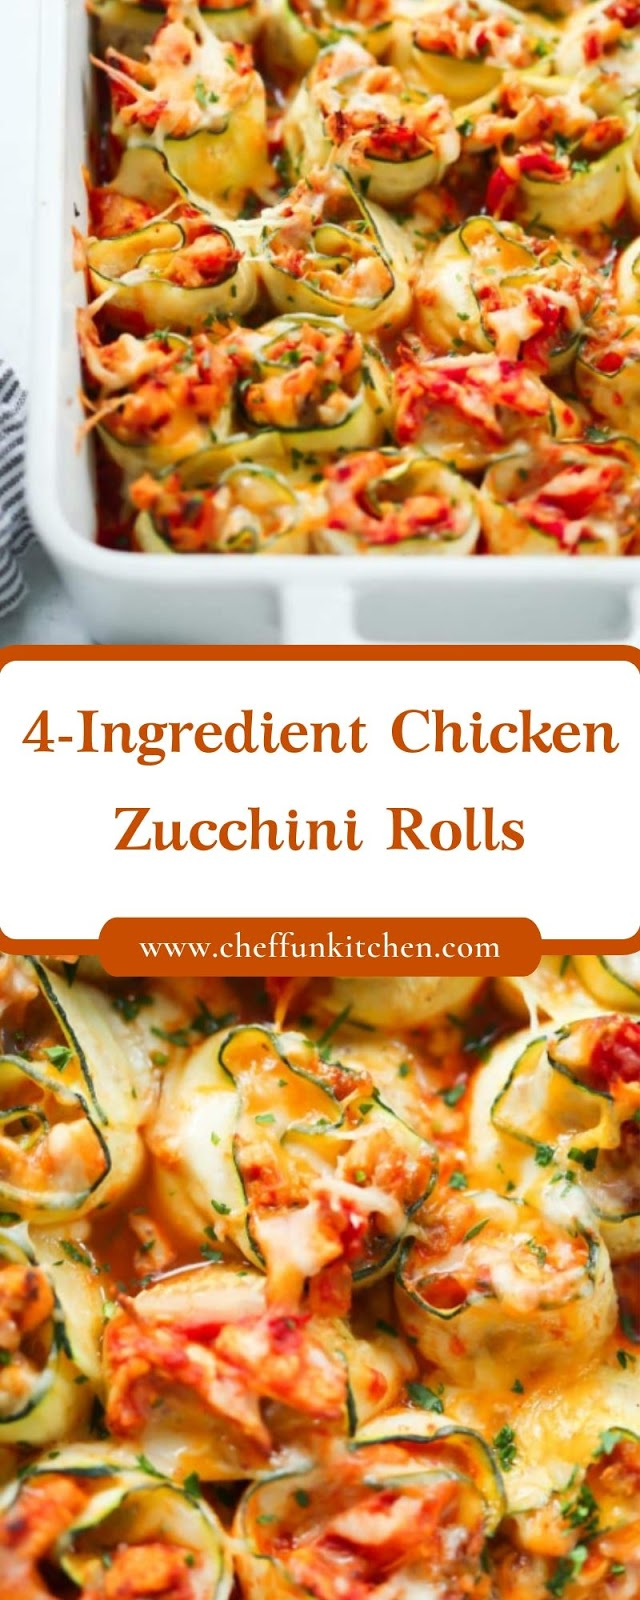 4-Ingredient Chicken Zucchini Rolls